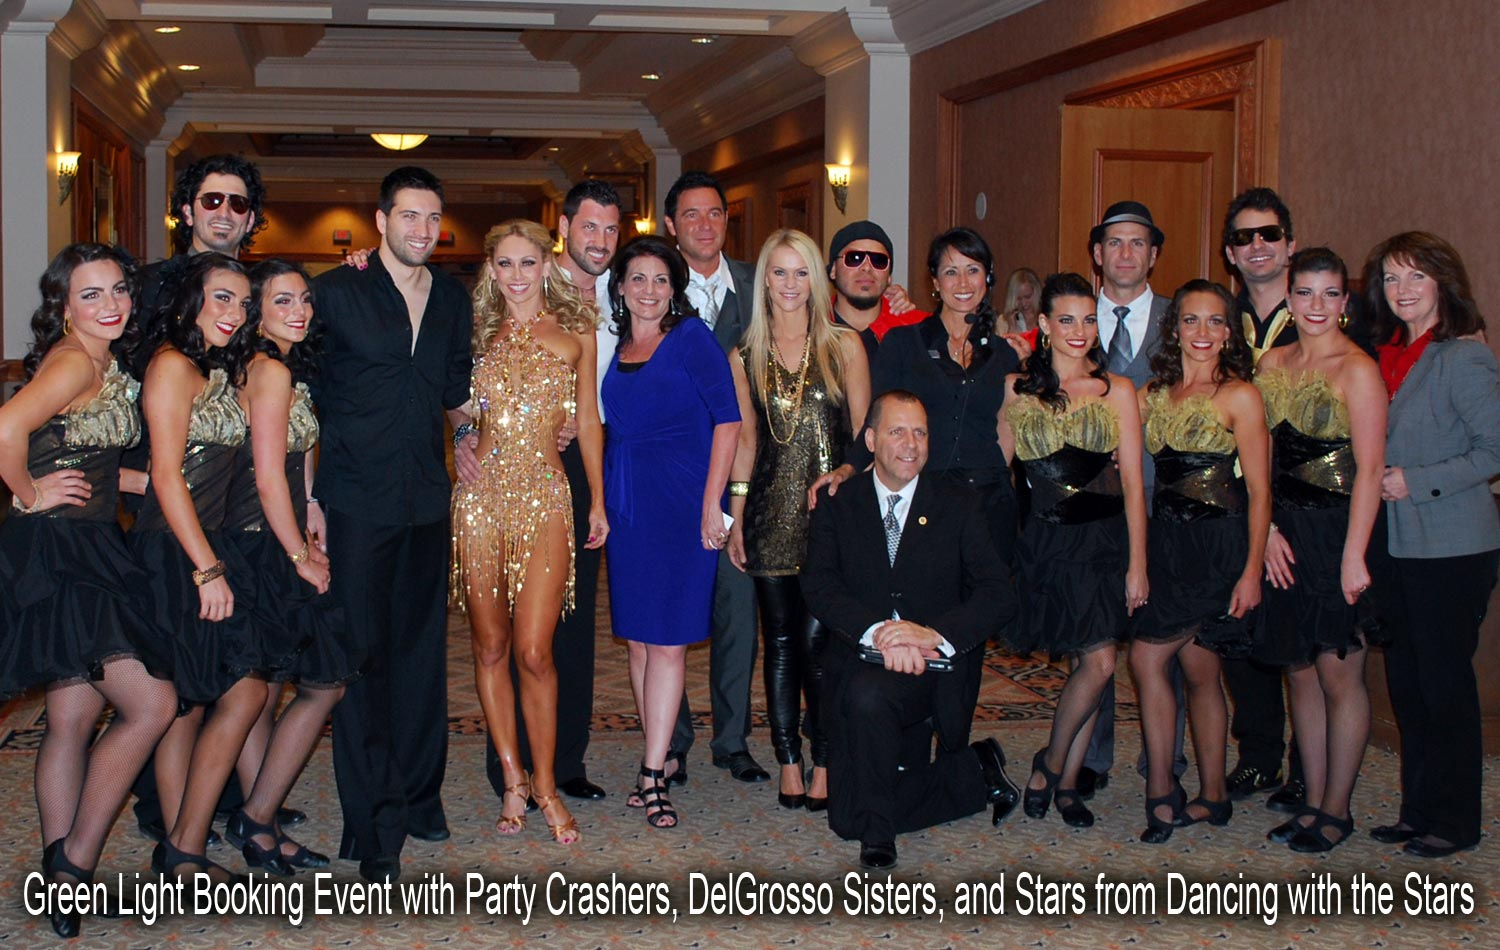 Sally from Green Light Booking with Party Crashers, DelGrosso Sisters, and Professional Dancers from Dancing with the Stars